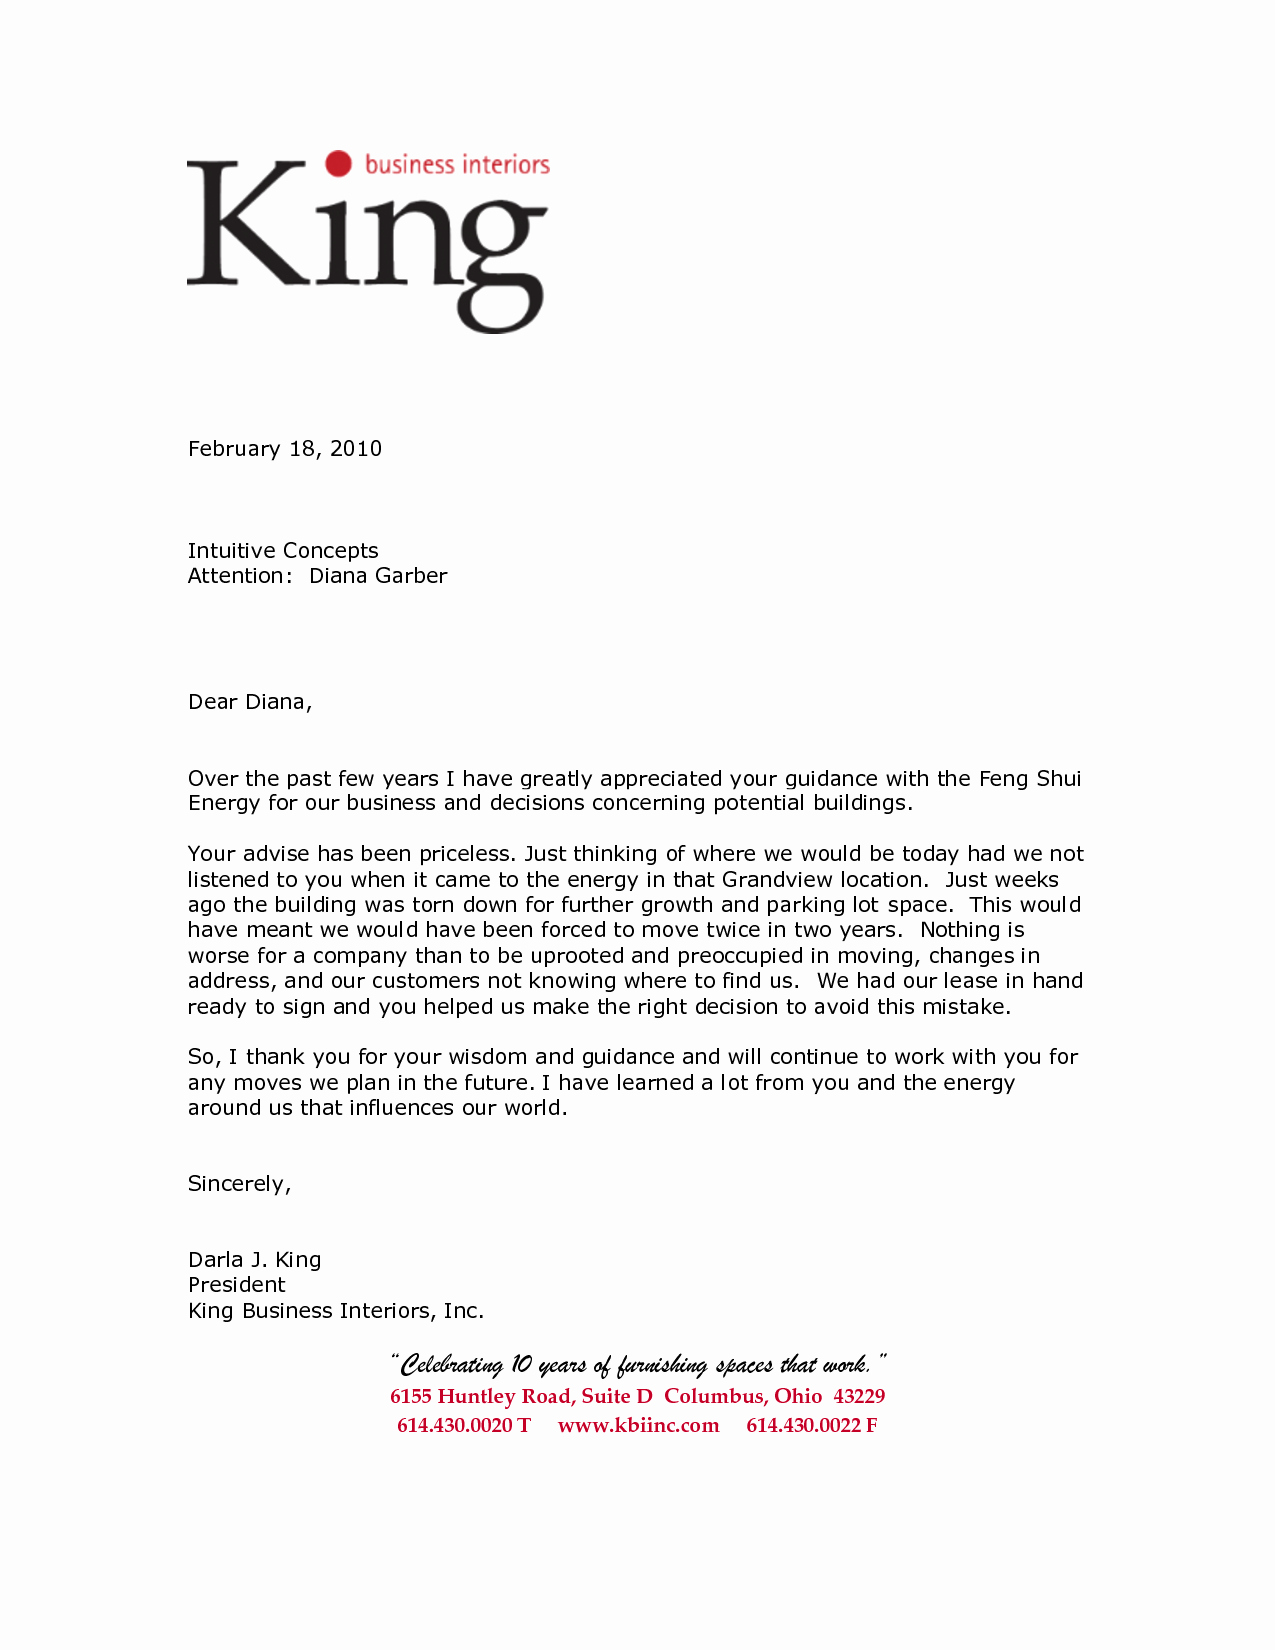 Business Reference Letter Template Awesome Business Letter Of Reference Template